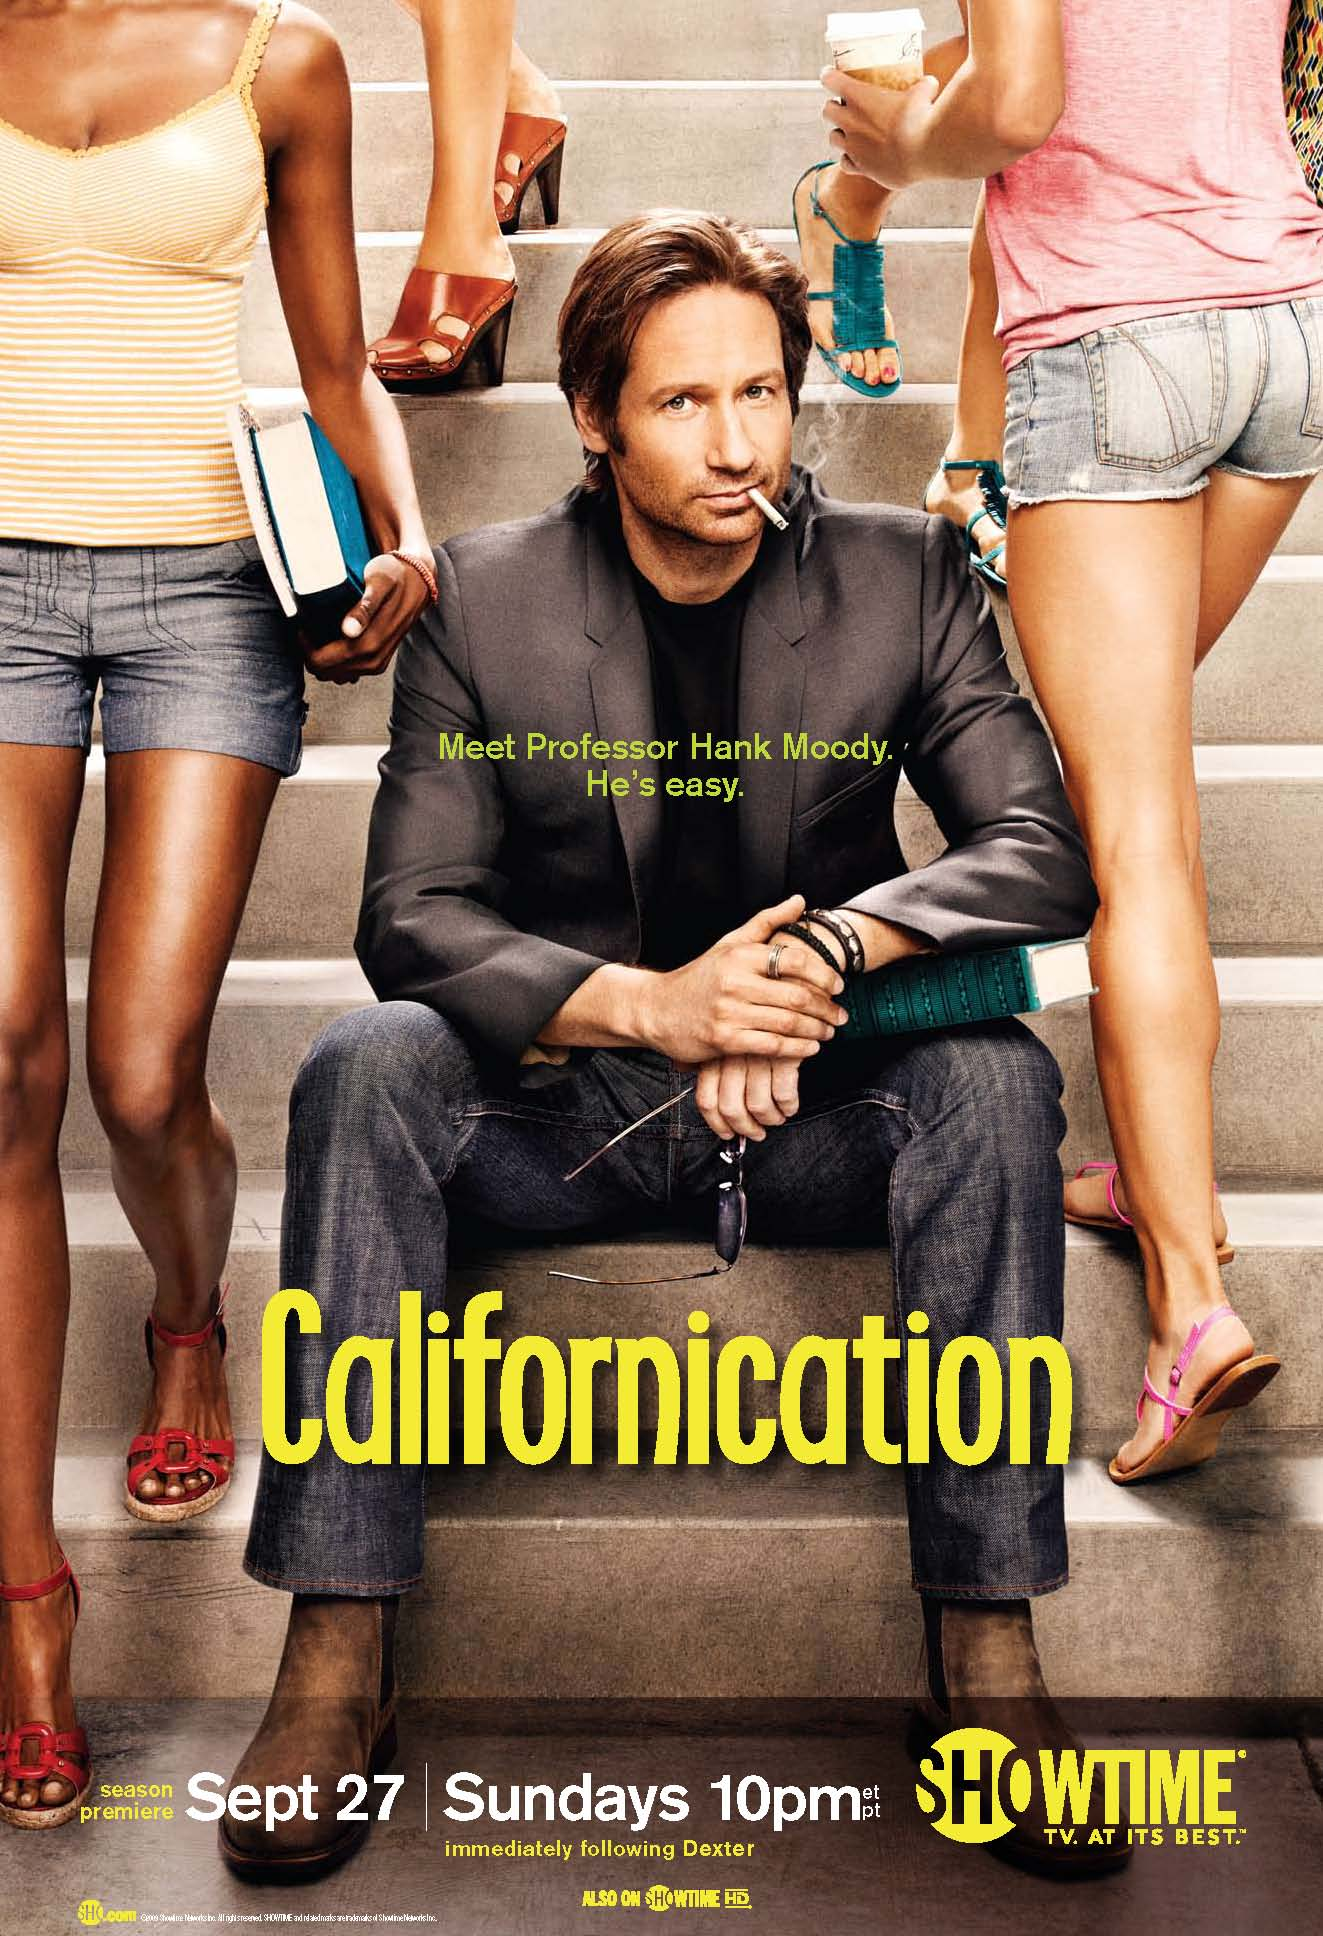 http://media.kino-govno.com/tv/c/californication/posters/californication_7.jpg